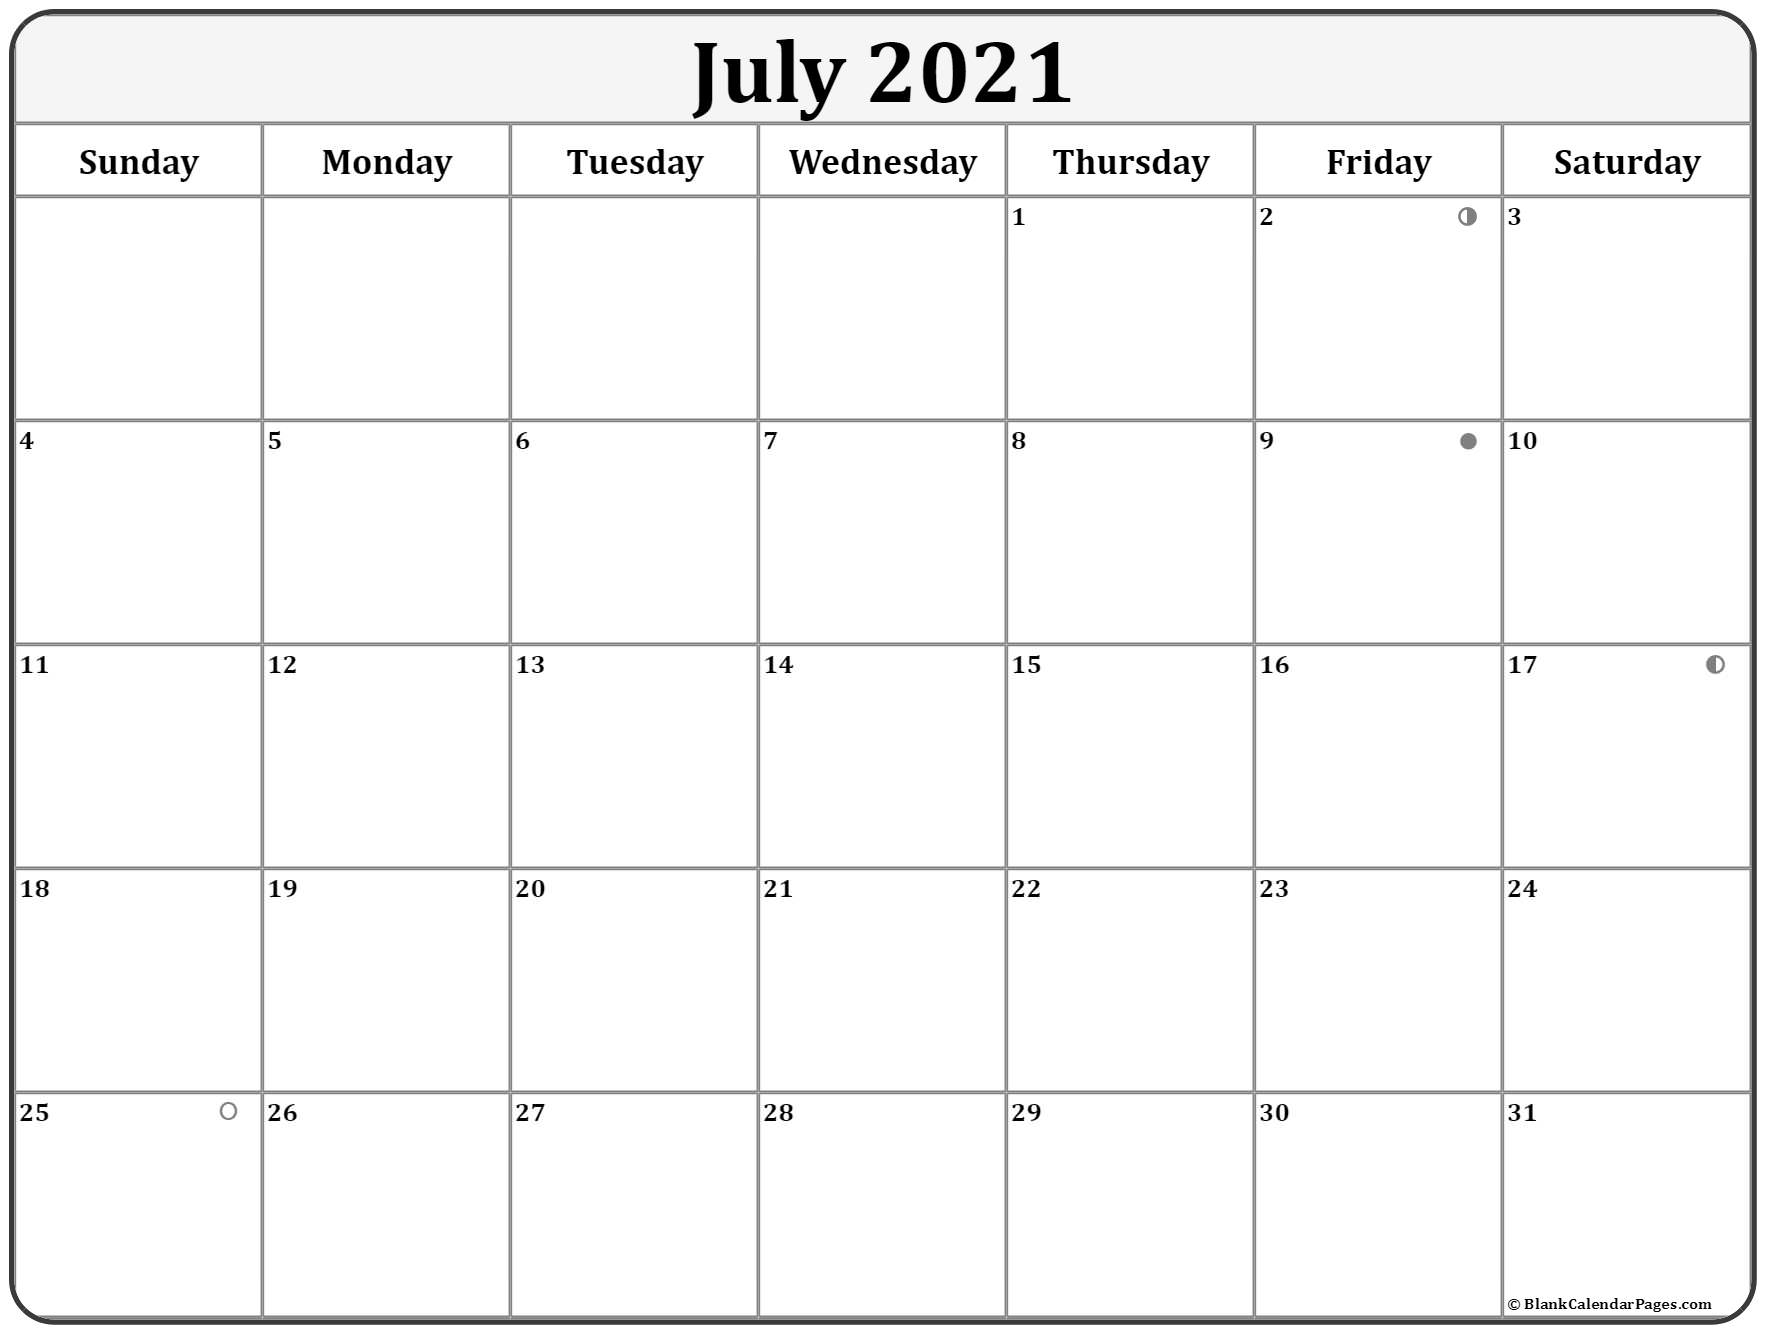 July 2021 Lunar Calendar | Moon Phase Calendar With Regard To Moon Phase Deer Hunting Chart 2021